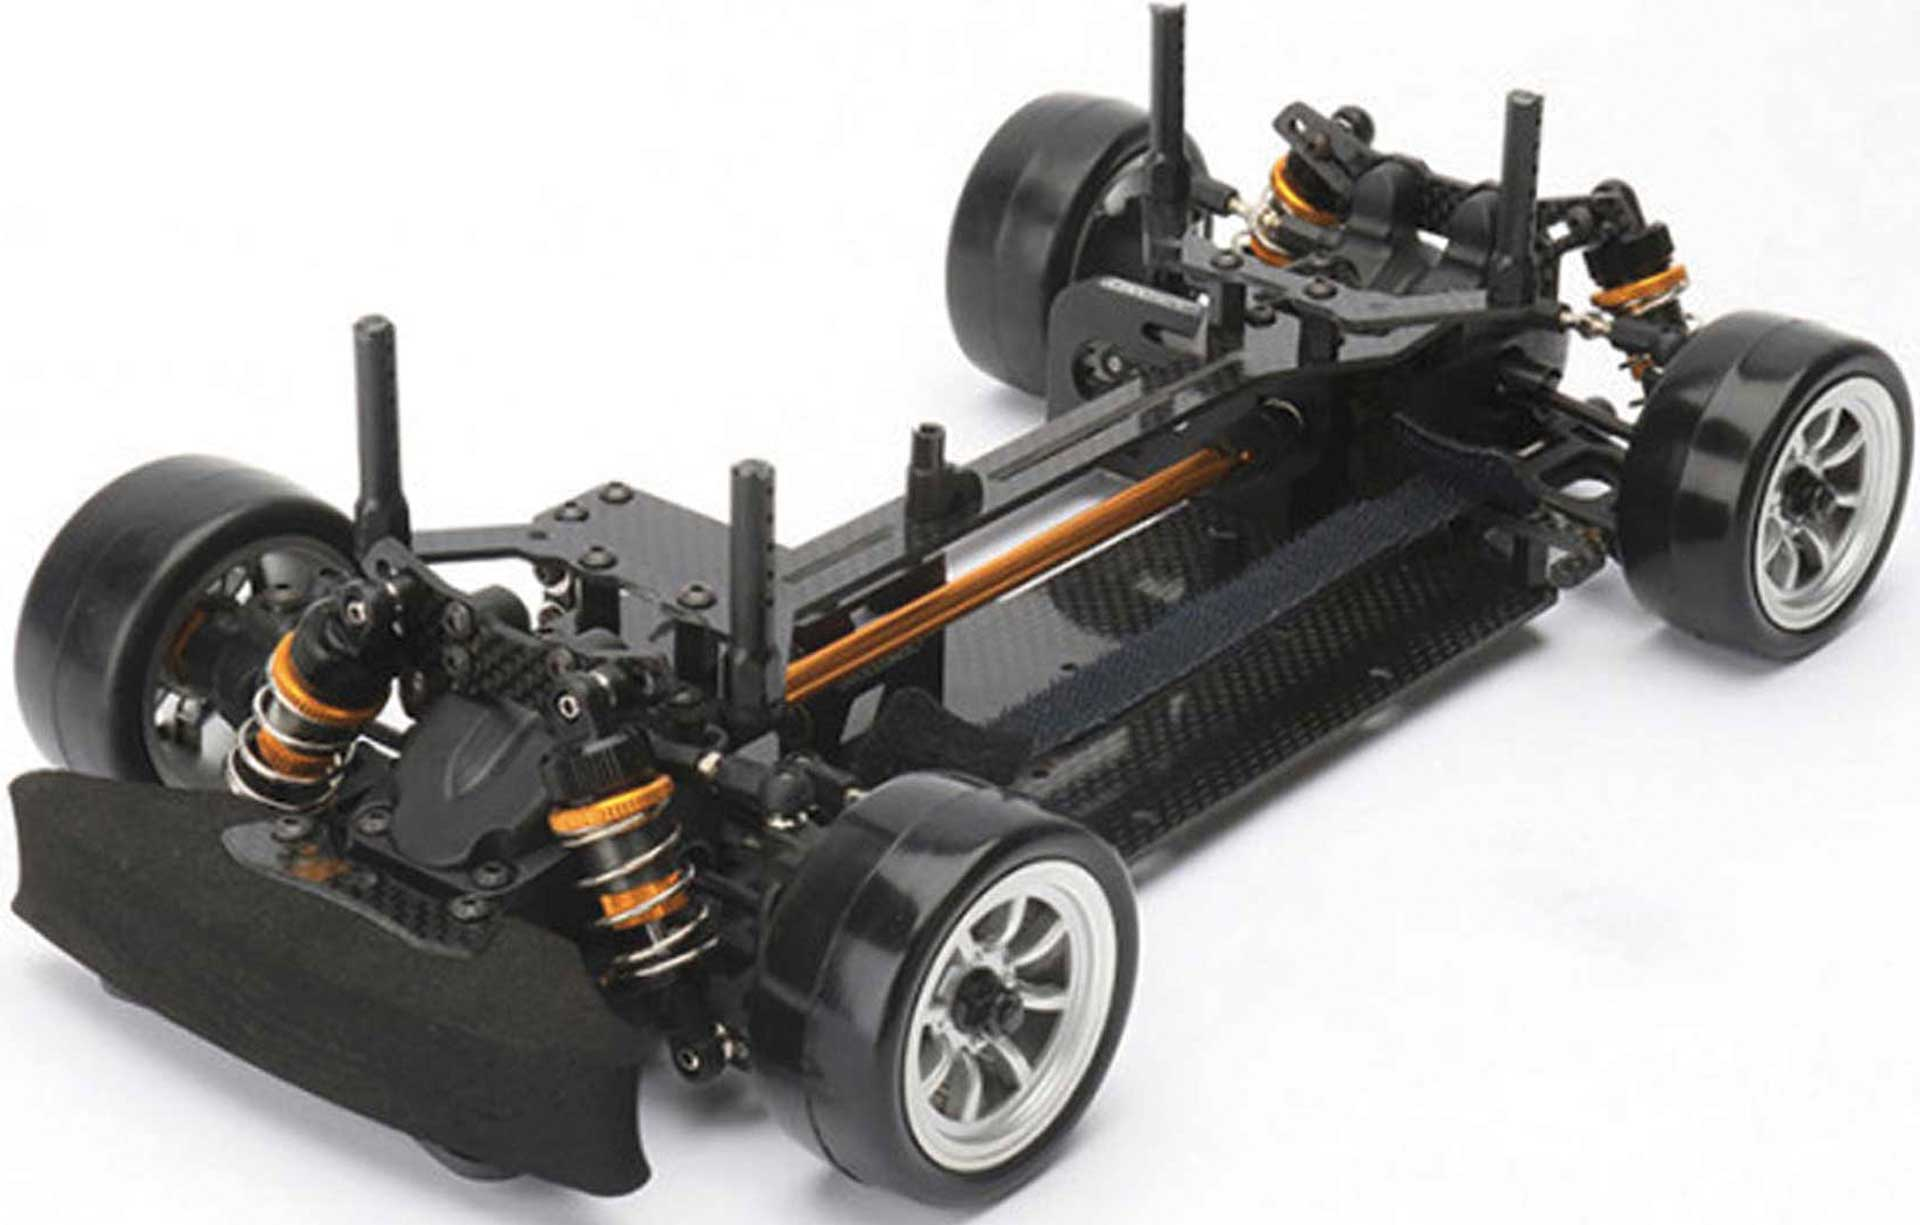 CARTEN M210R PLUS 1/10 M CHASSIS KIT 4WD EP